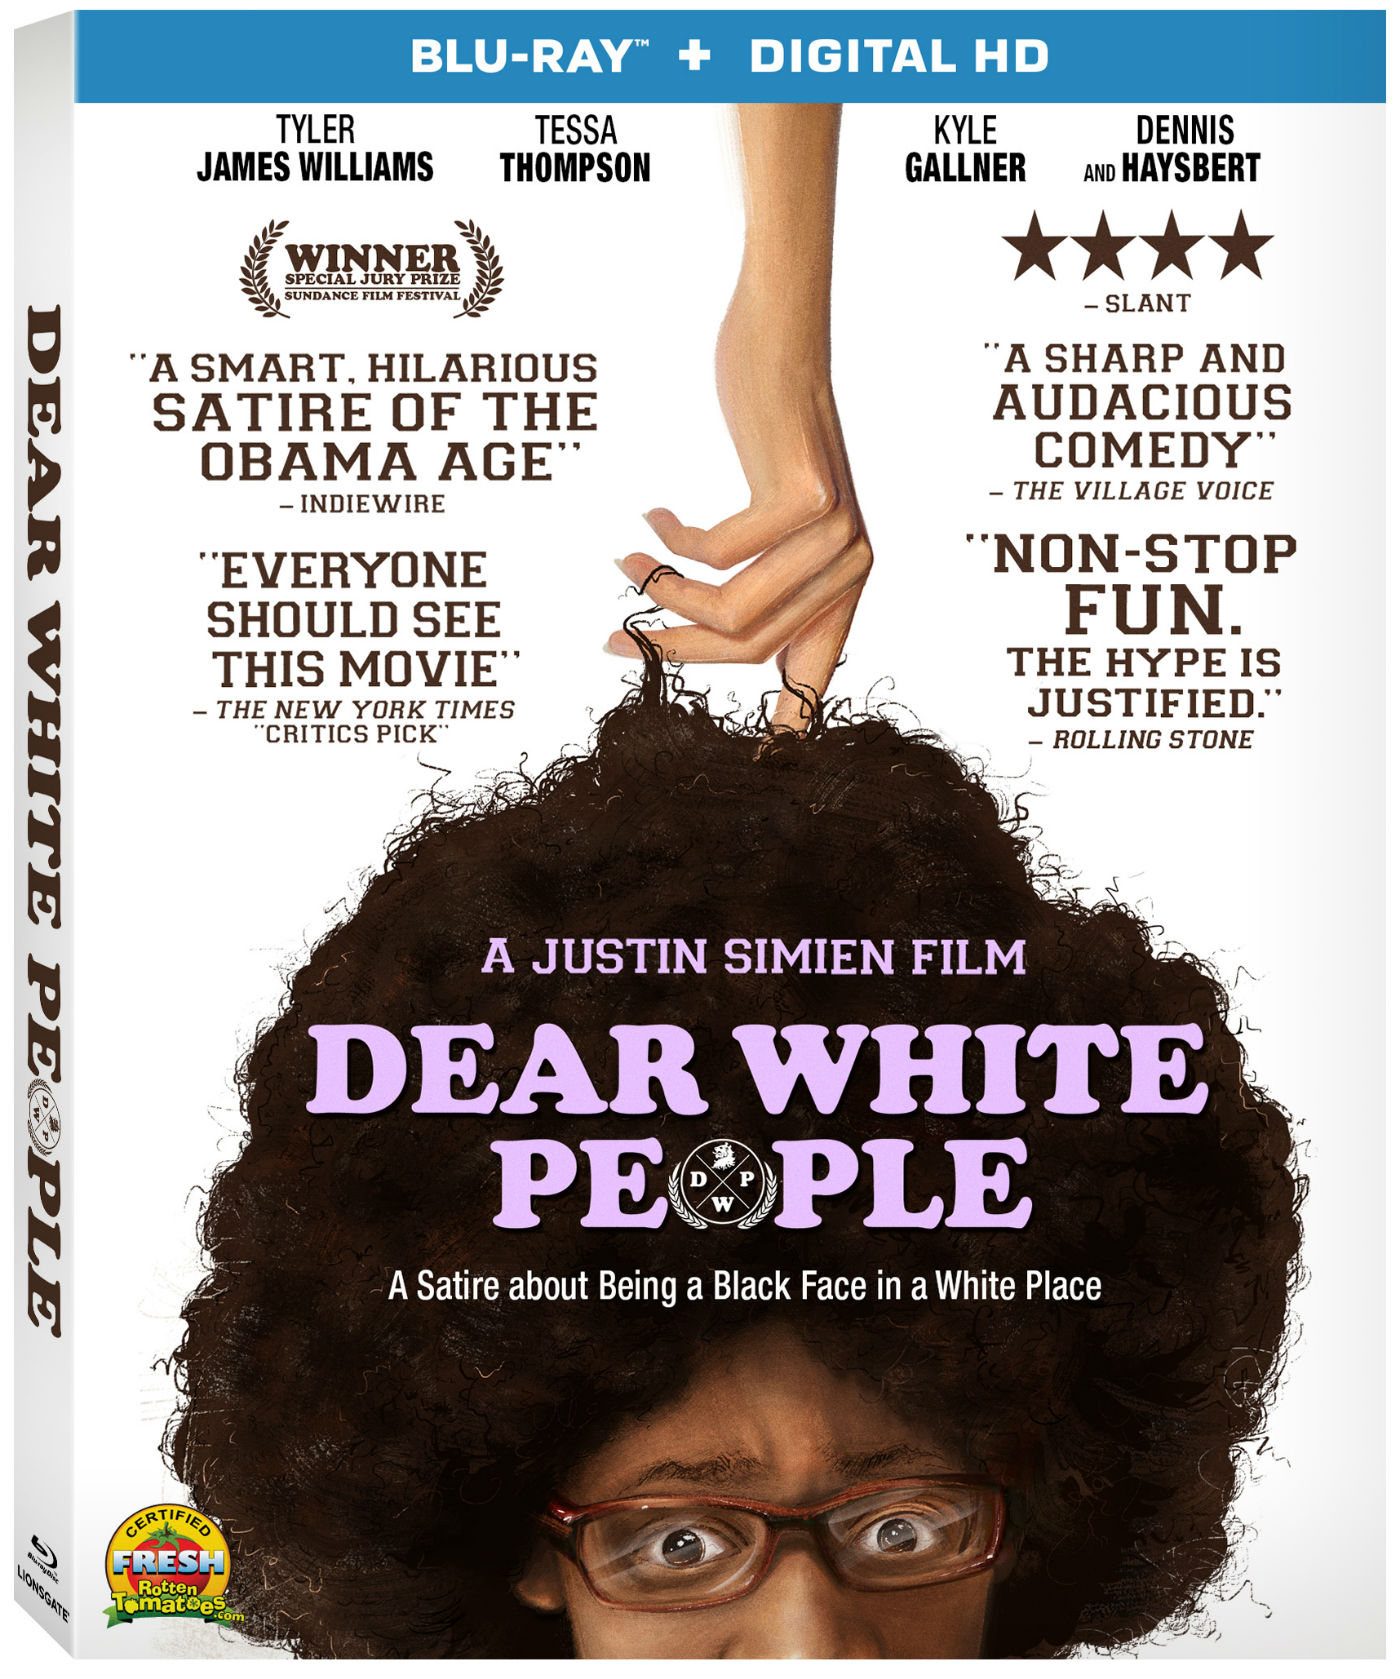 Blu-ray Contest: Dear White People - Blackfilm - Black